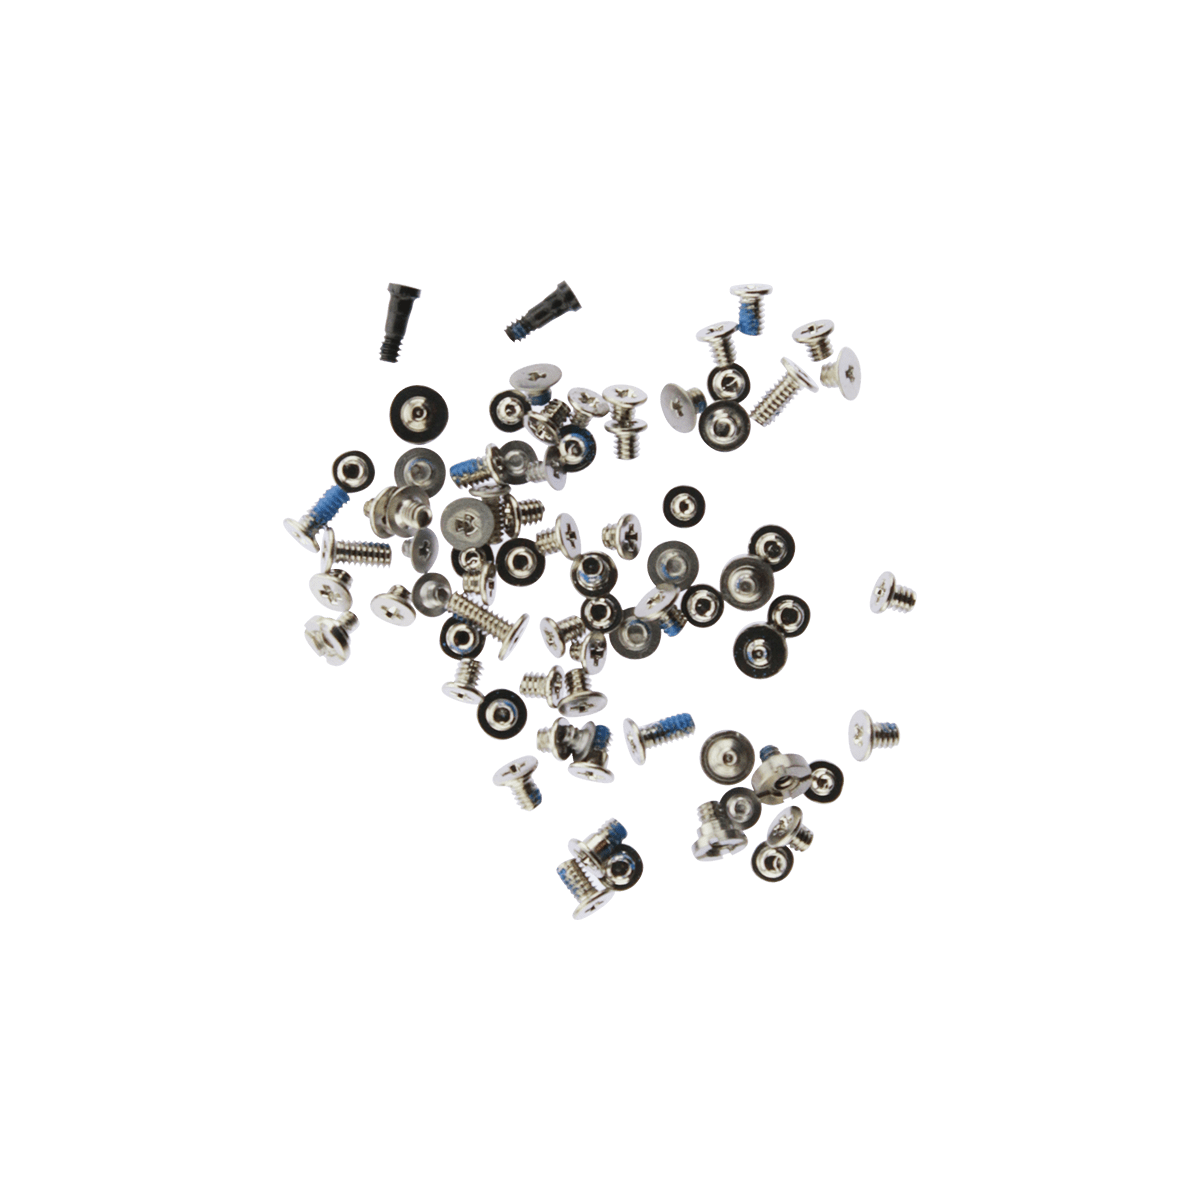 Iphone 7 Plus Screw Set